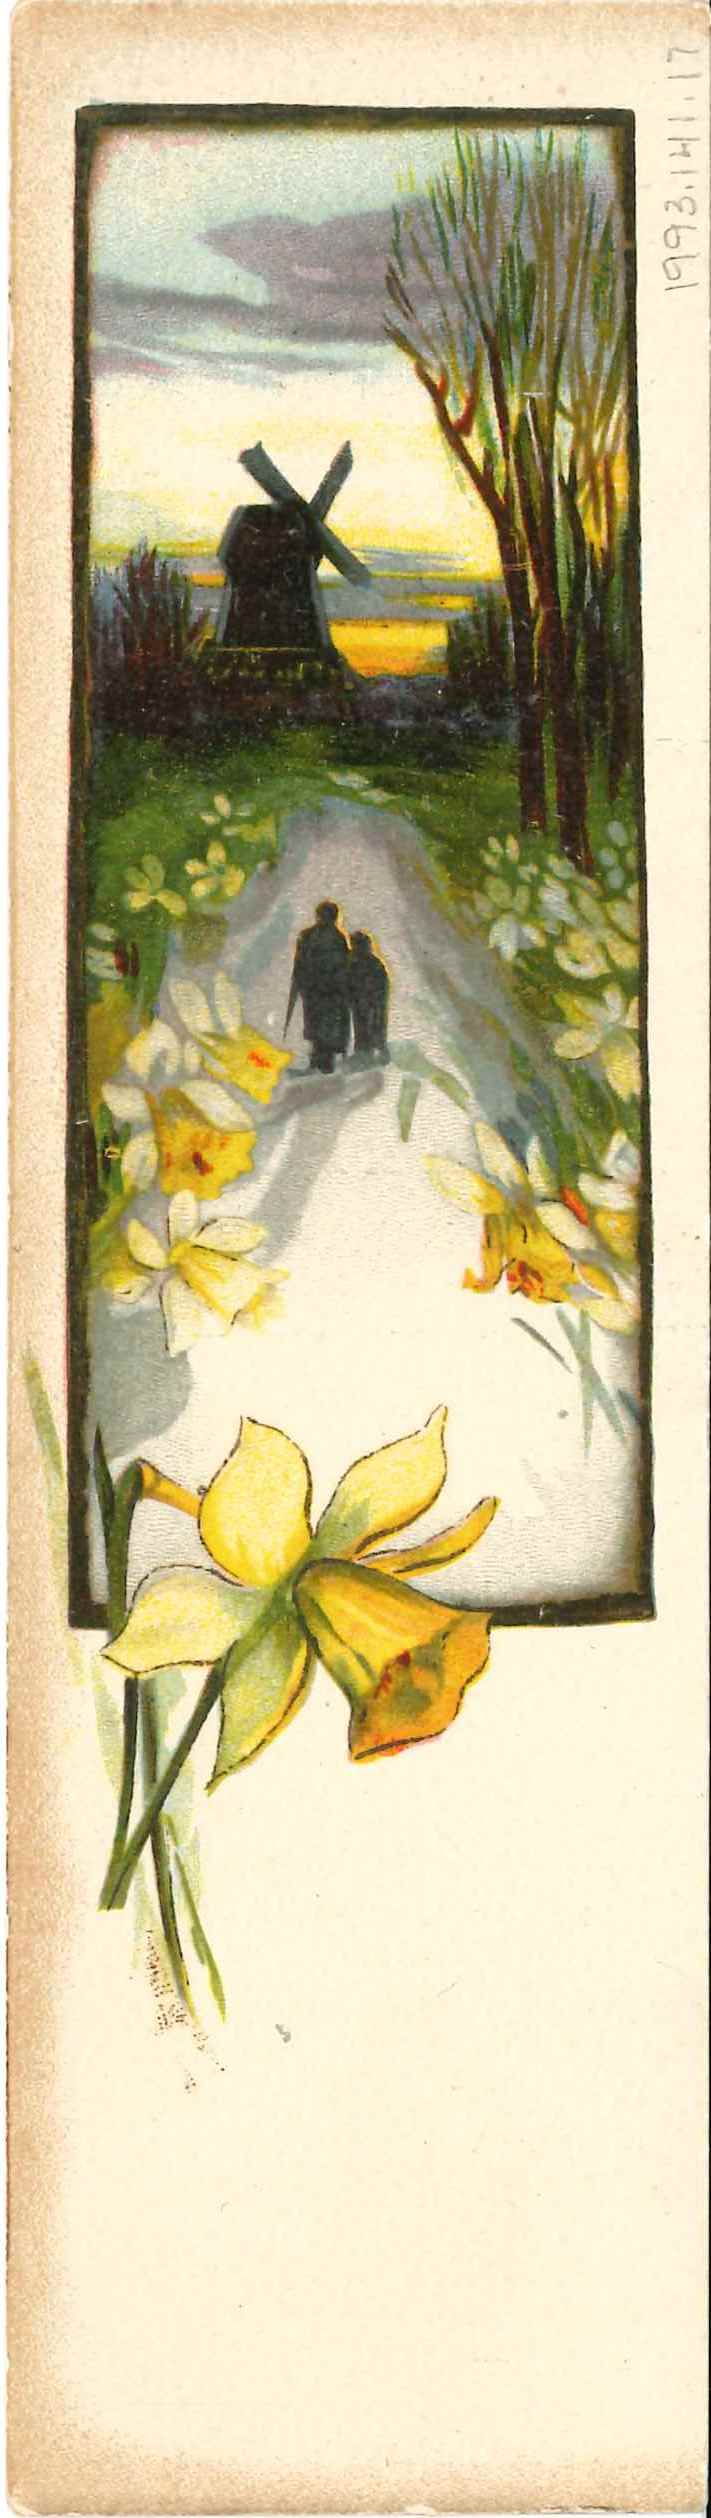 Bonus daffodils! An illustration from a giveaway bookmark, advertising the book department at Joel Gutman & Co., circa 1915. Anonymous donation.  JMM 1993.141.17